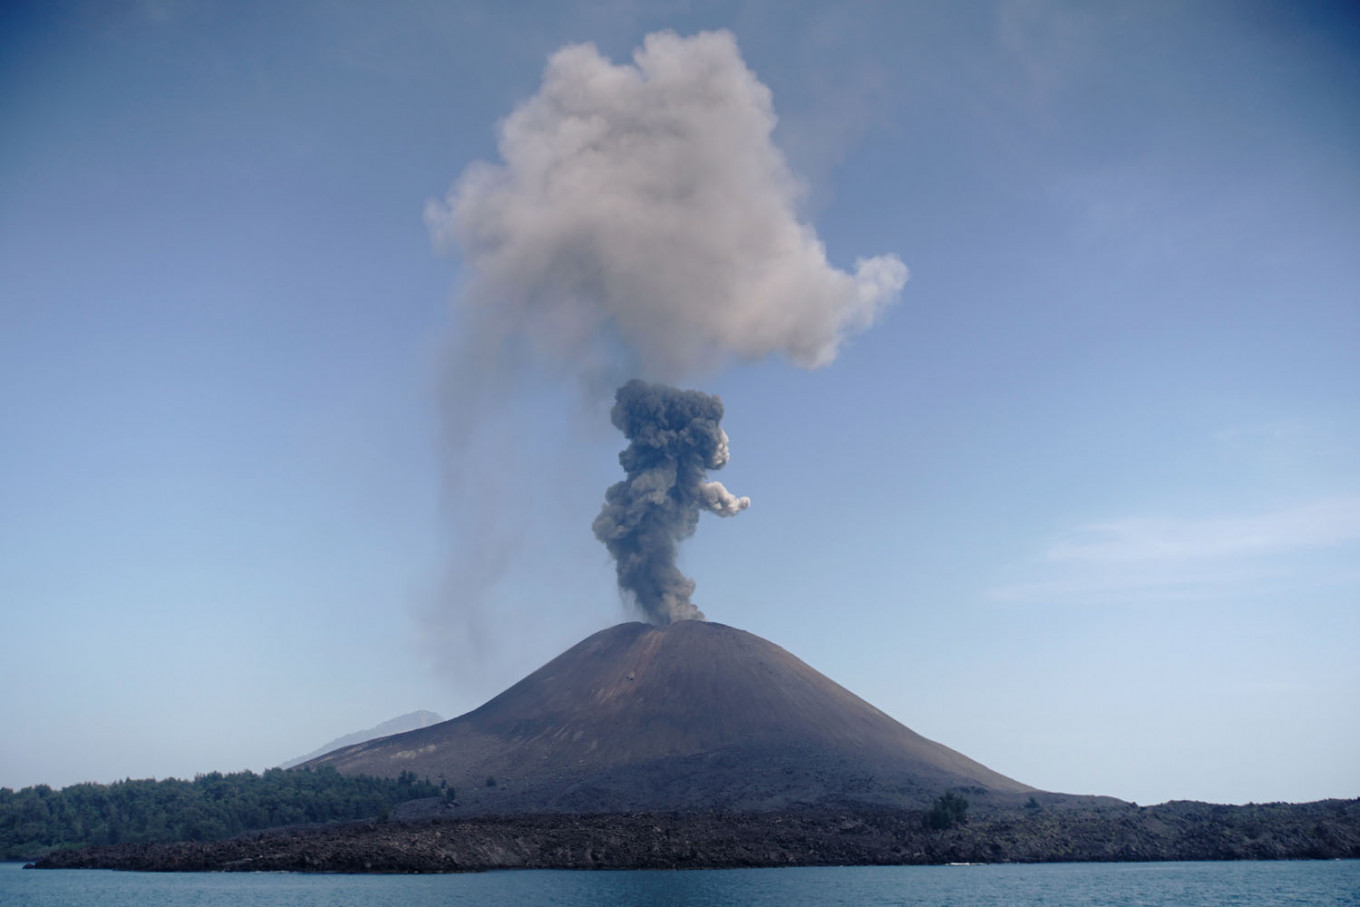 Anak Krakatau erupts, loud rumble heard in virus-stricken Greater Jakarta